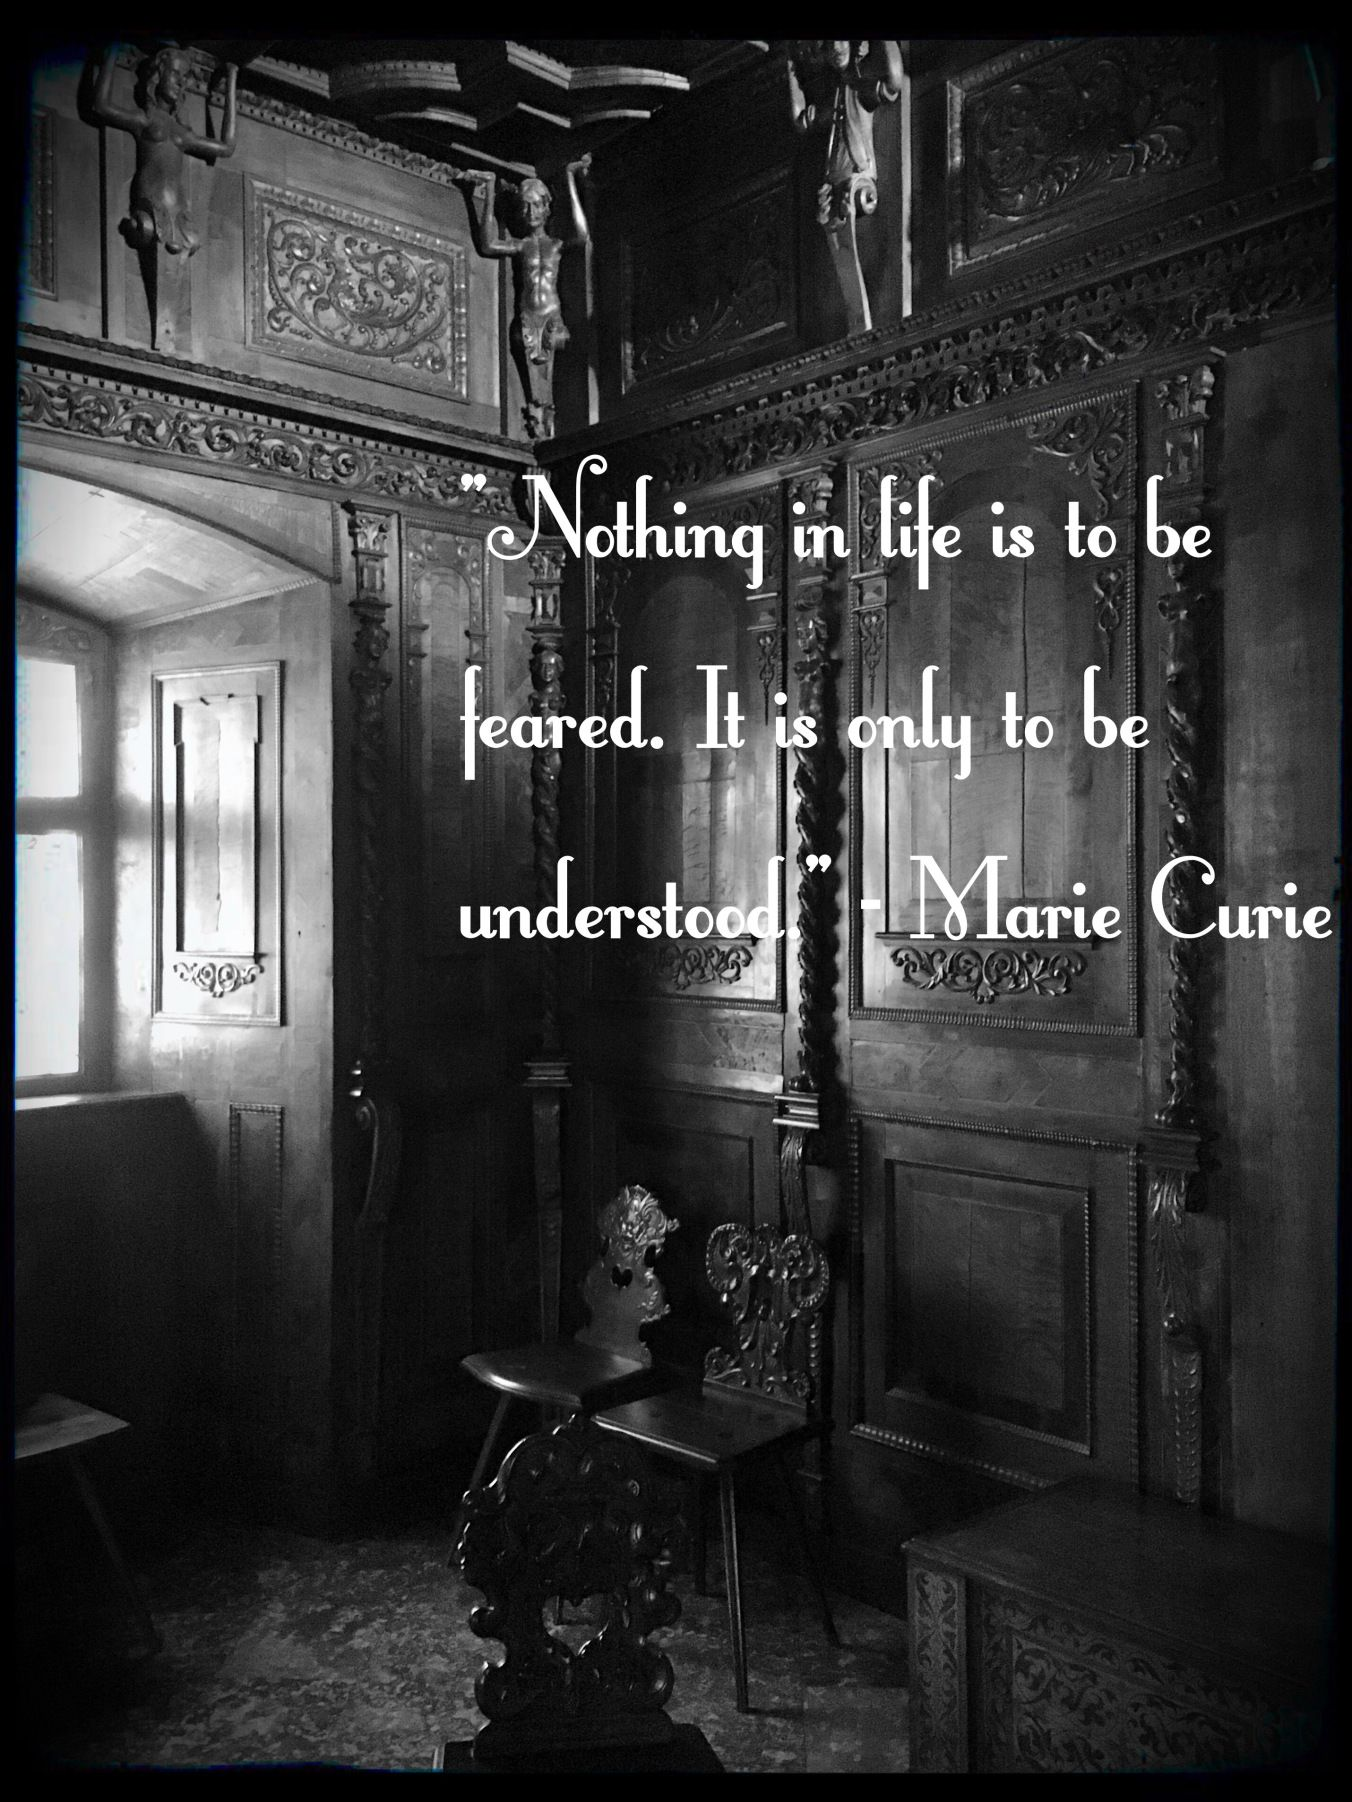 Enlightenment marie curie quotes marie curie blog board